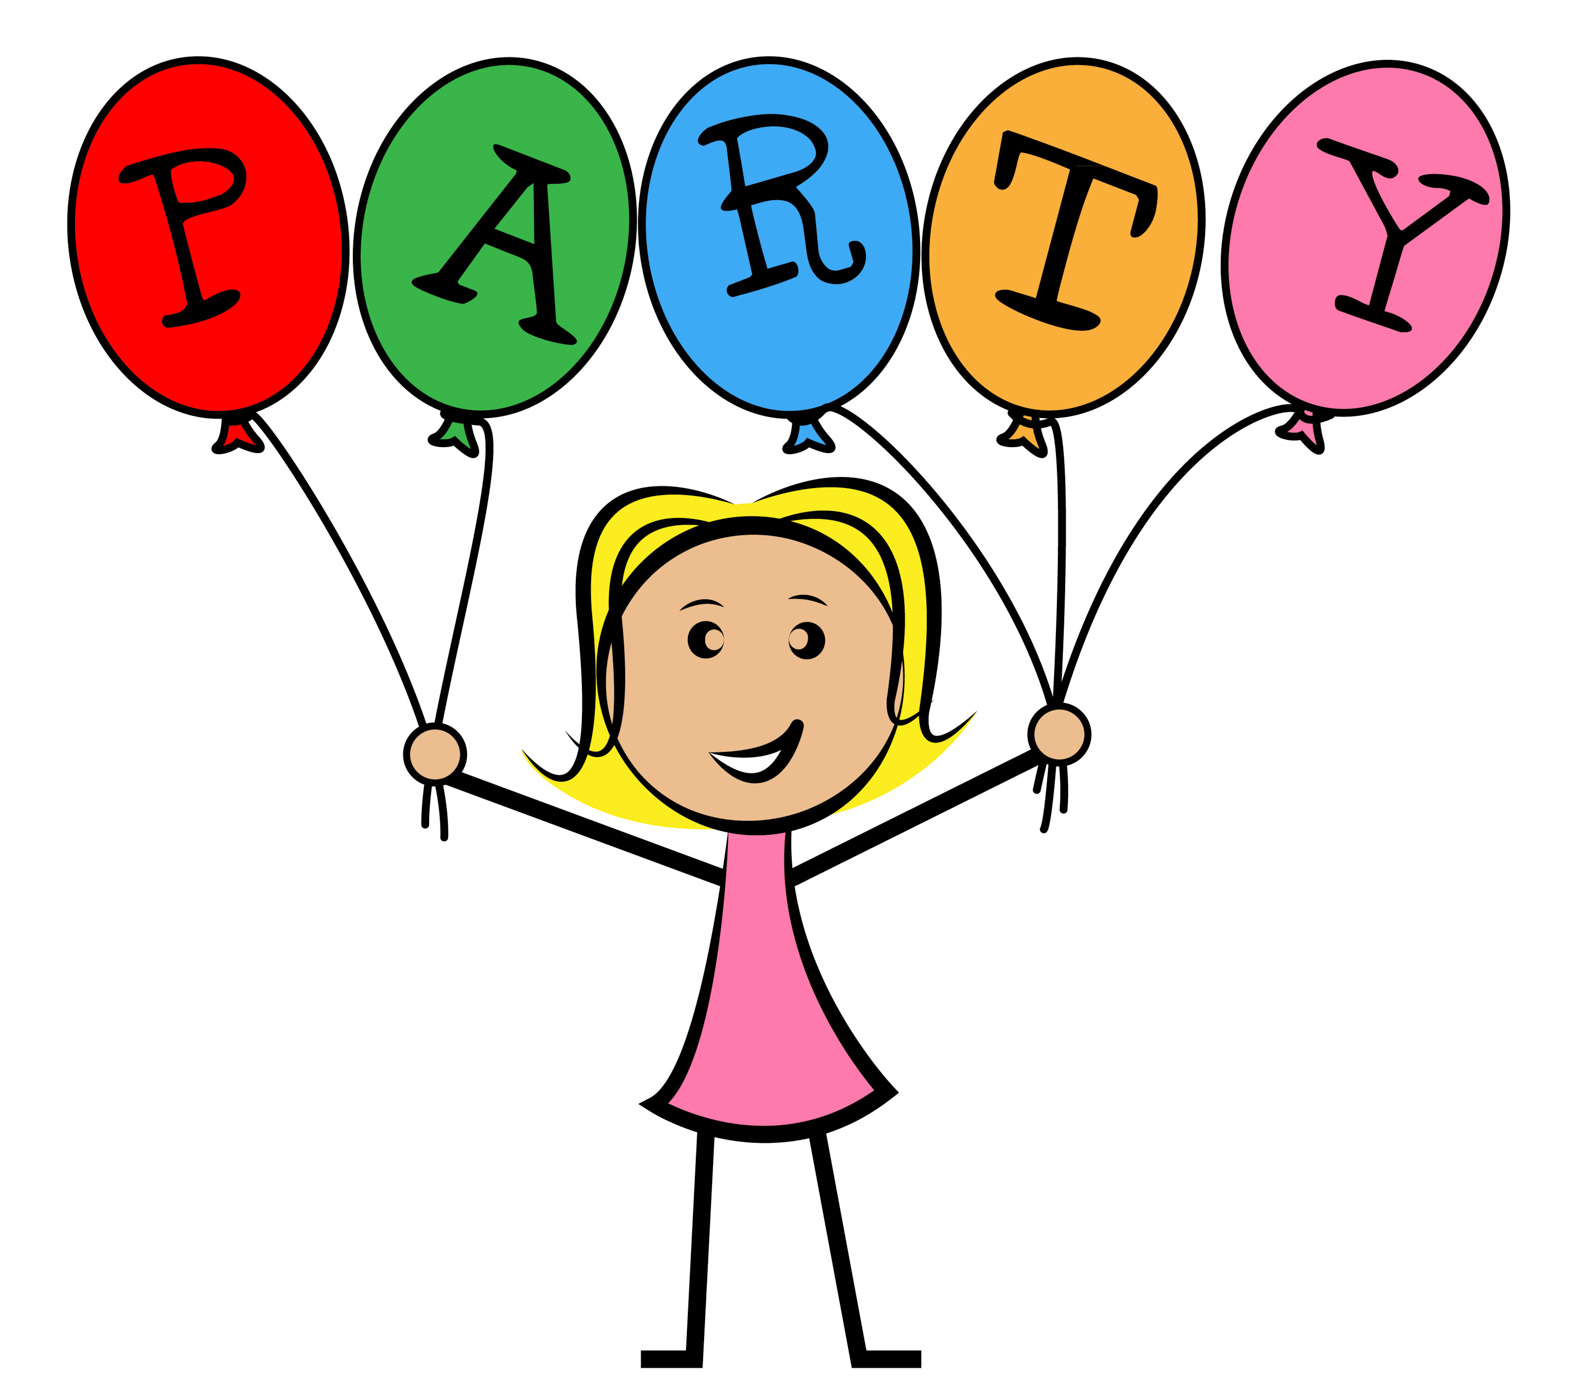 Party Balloons Represents Young Woman And Kids, Balloon, Youth, Youngwoman, Youngsters, HQ Photo